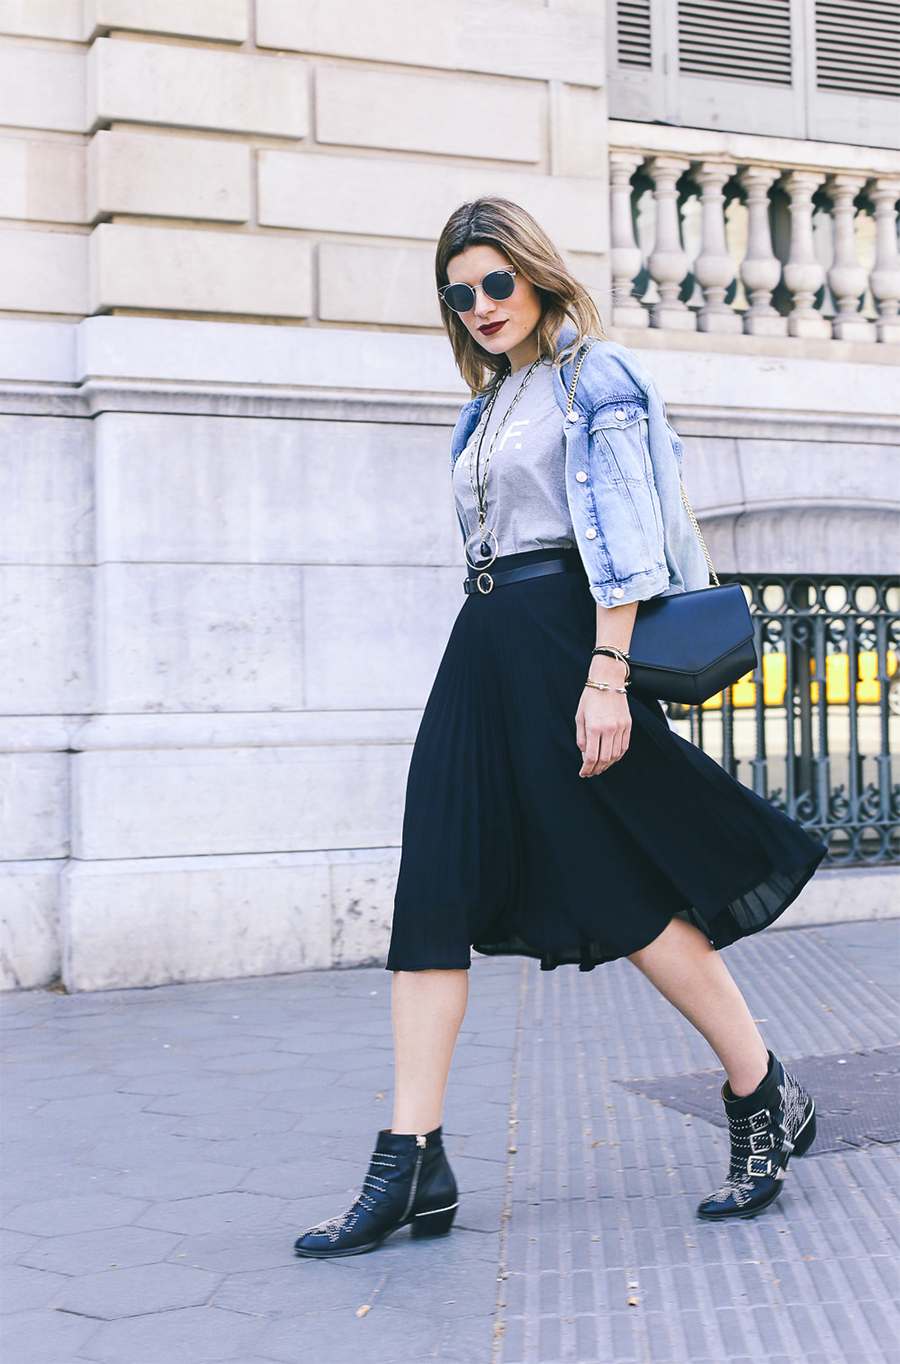 spring-outfit-idea-with-midi-skirt-and-chloe-boots-silviaboschblog